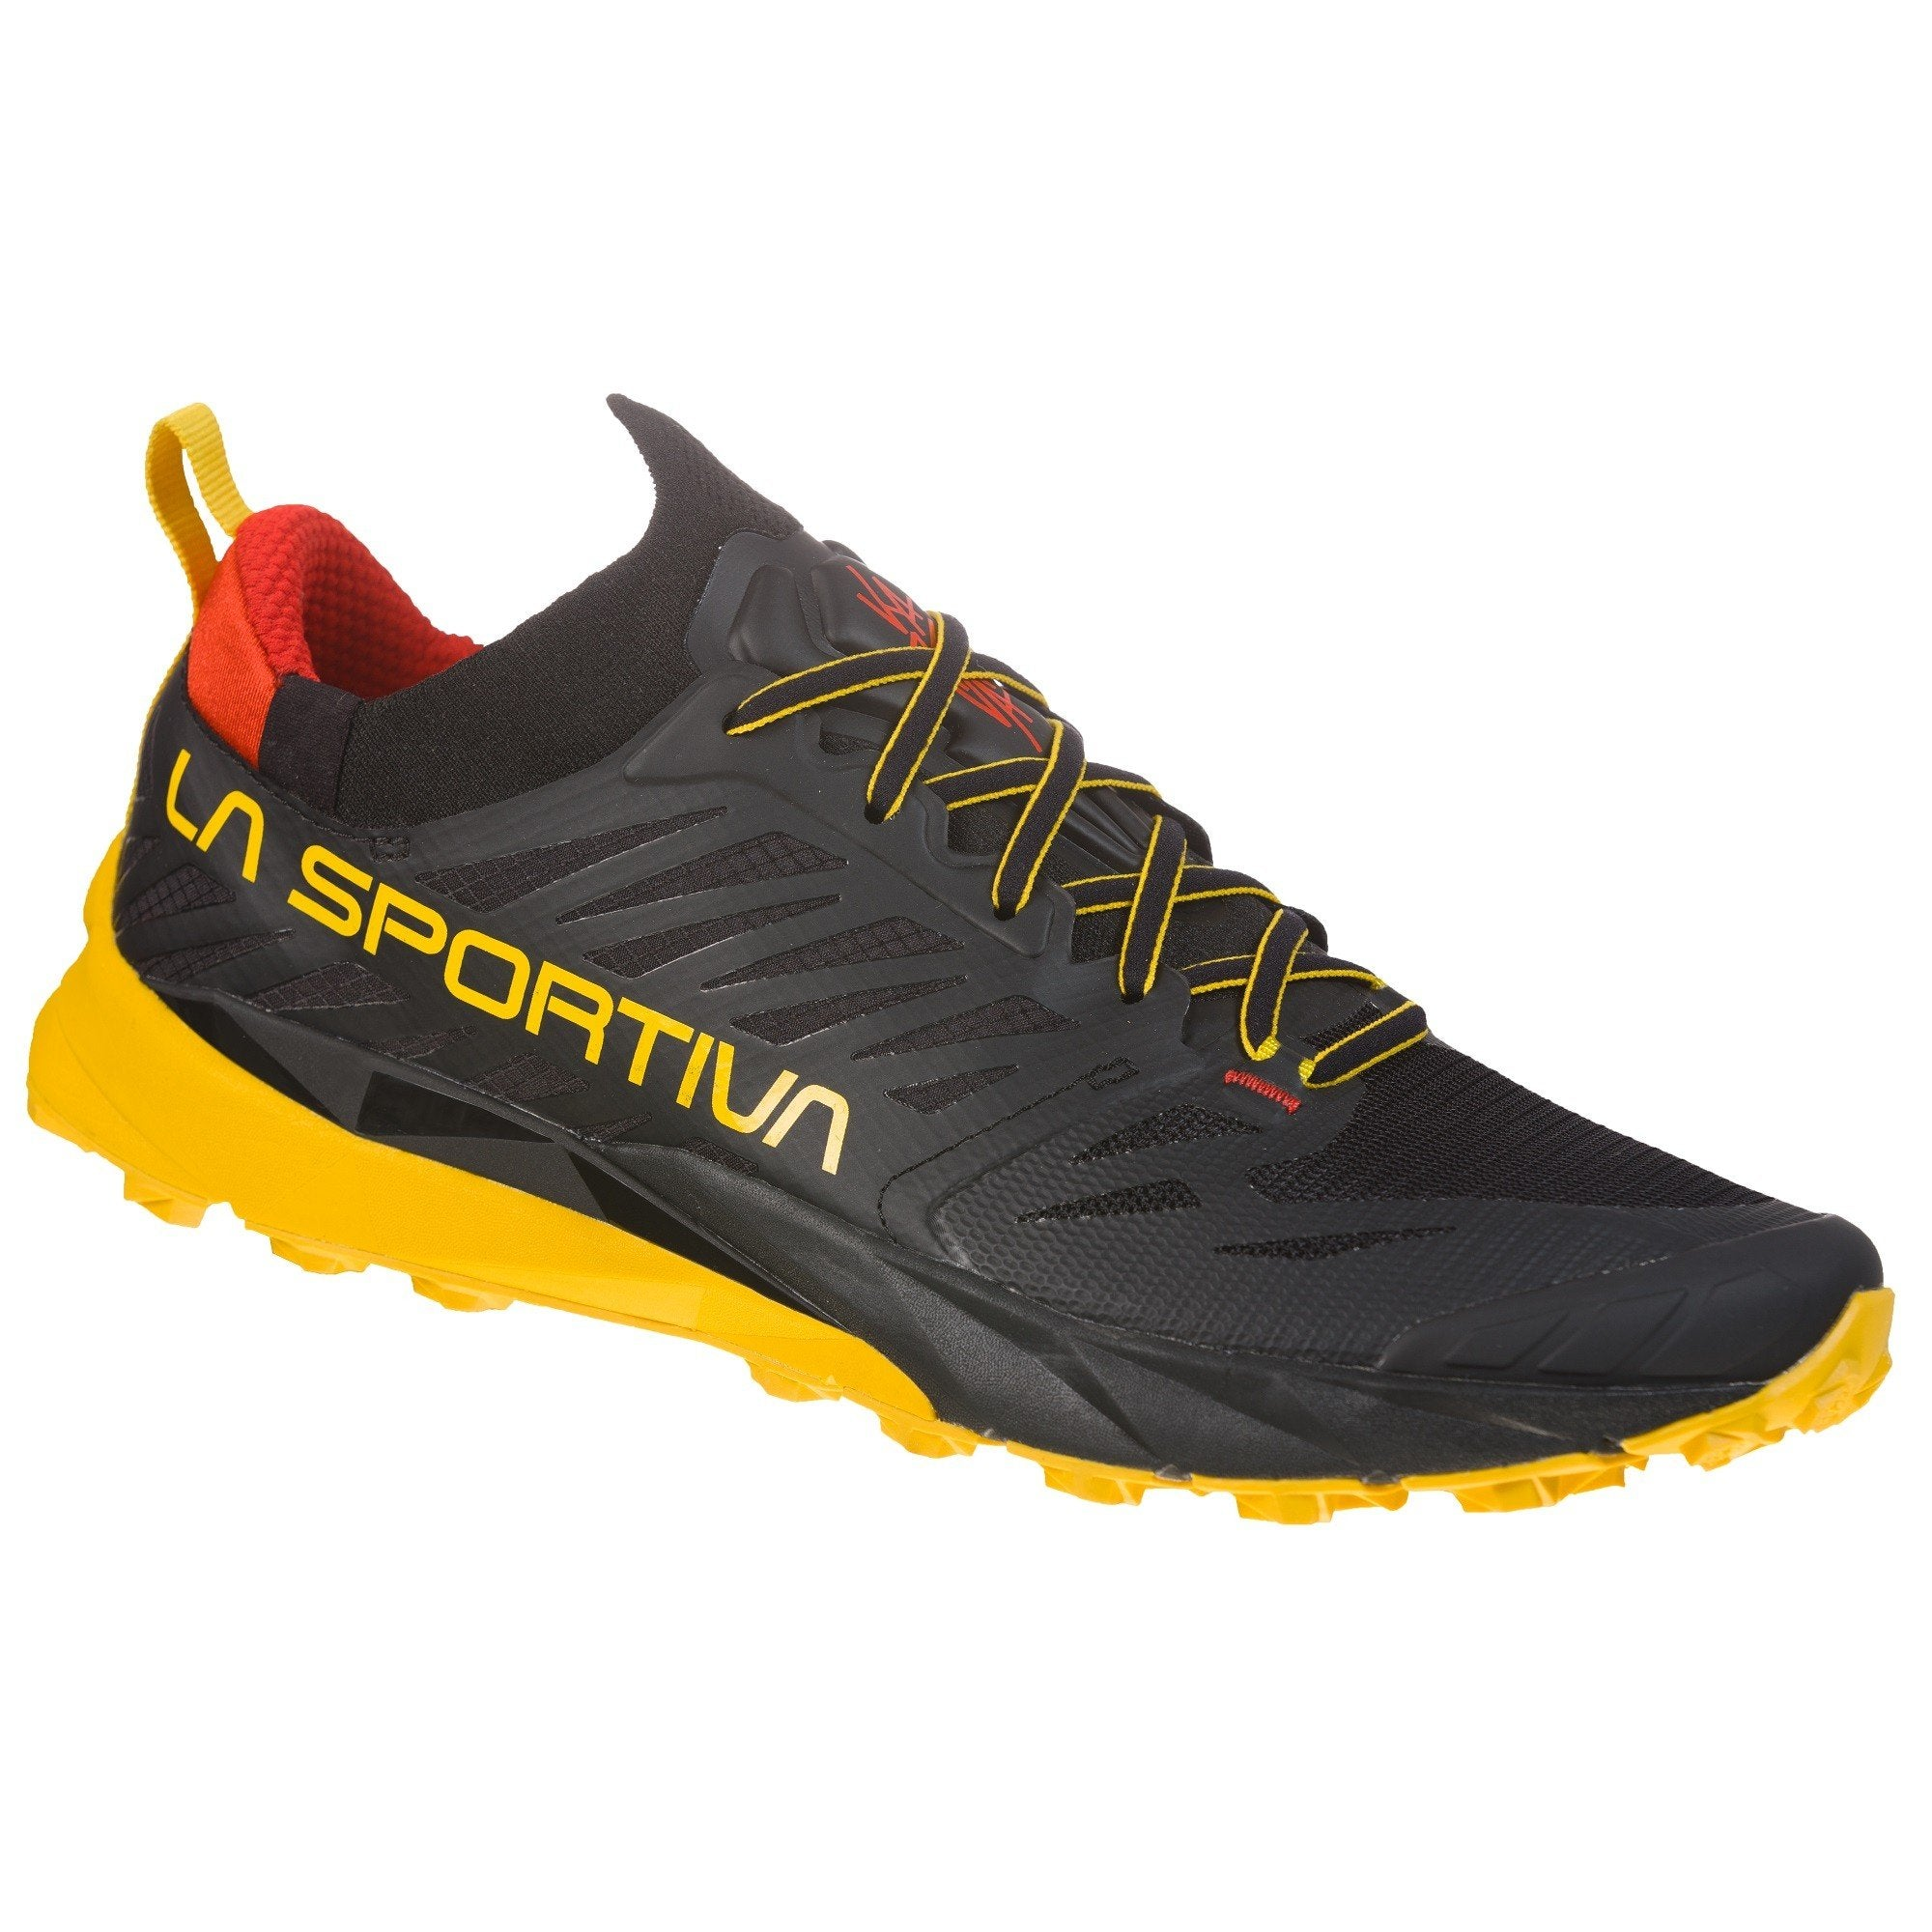 La Sportiva Kaptiva trail running shoe, outer side view in black/yellow/red colours